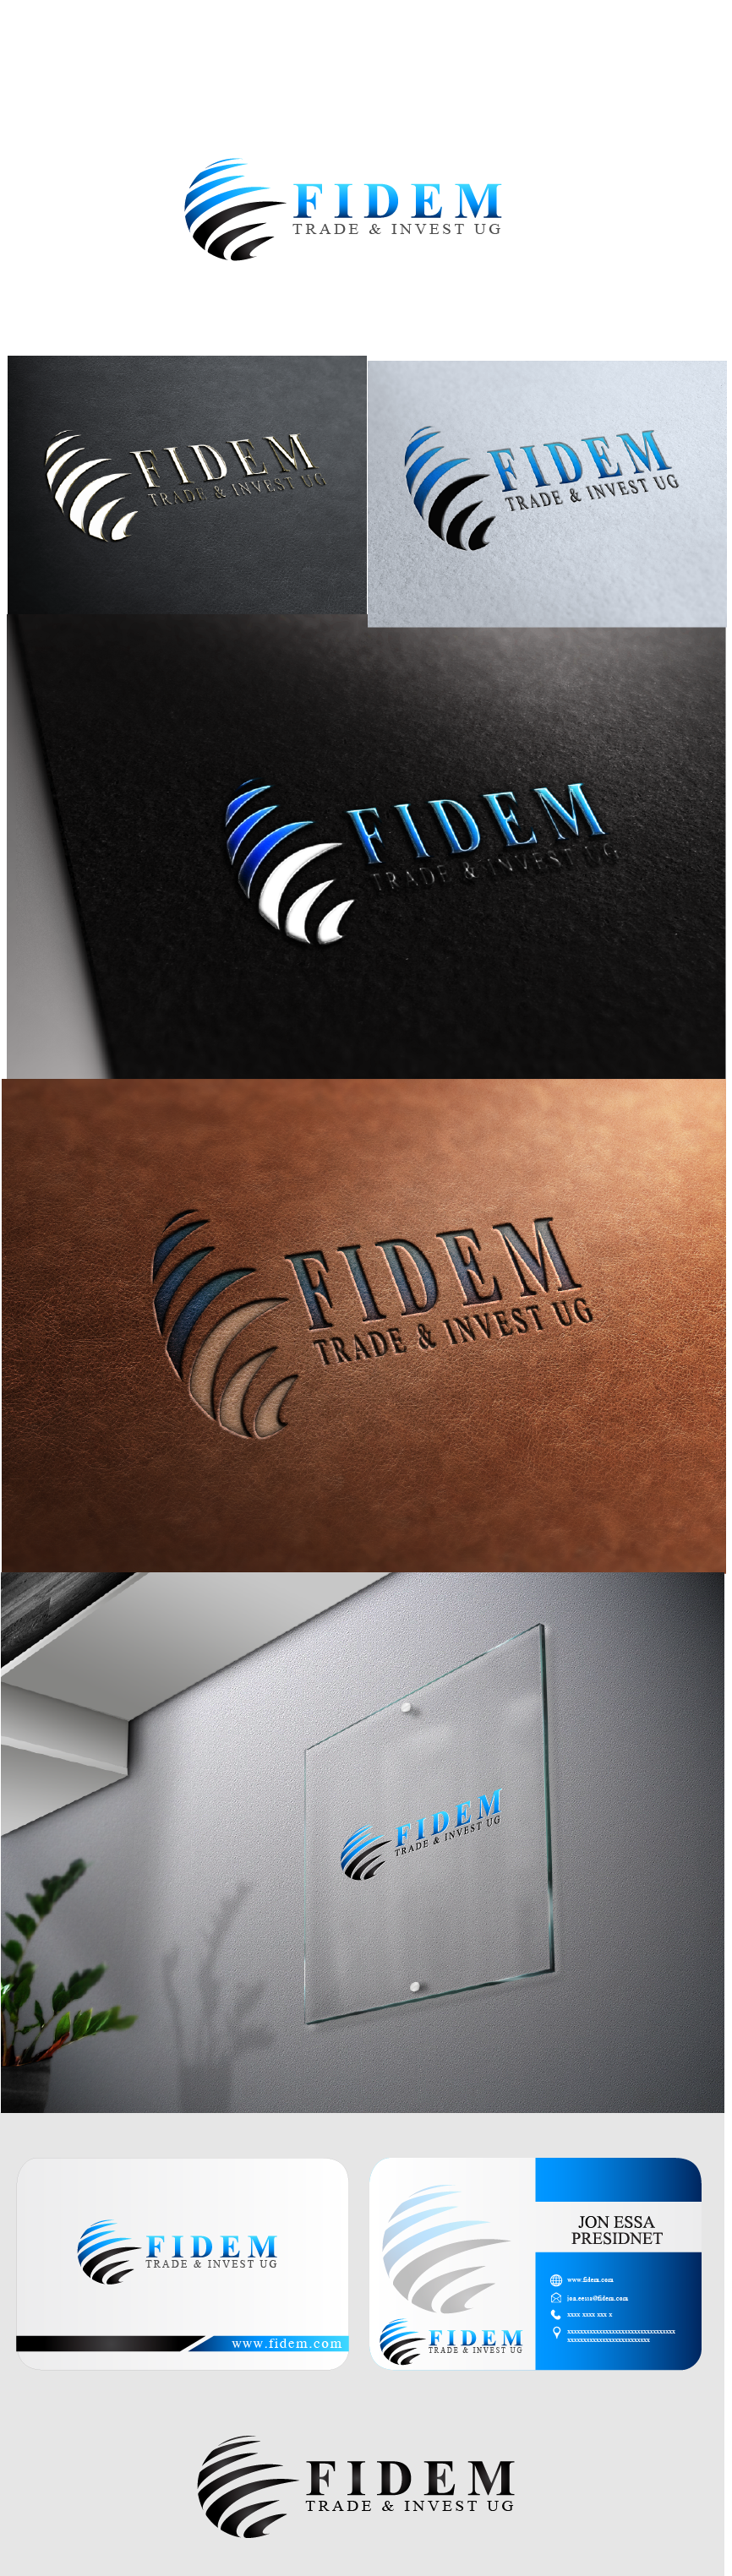 Logo Design by Private User - Entry No. 423 in the Logo Design Contest Professional Logo Design for FIDEM Trade & Invest UG.